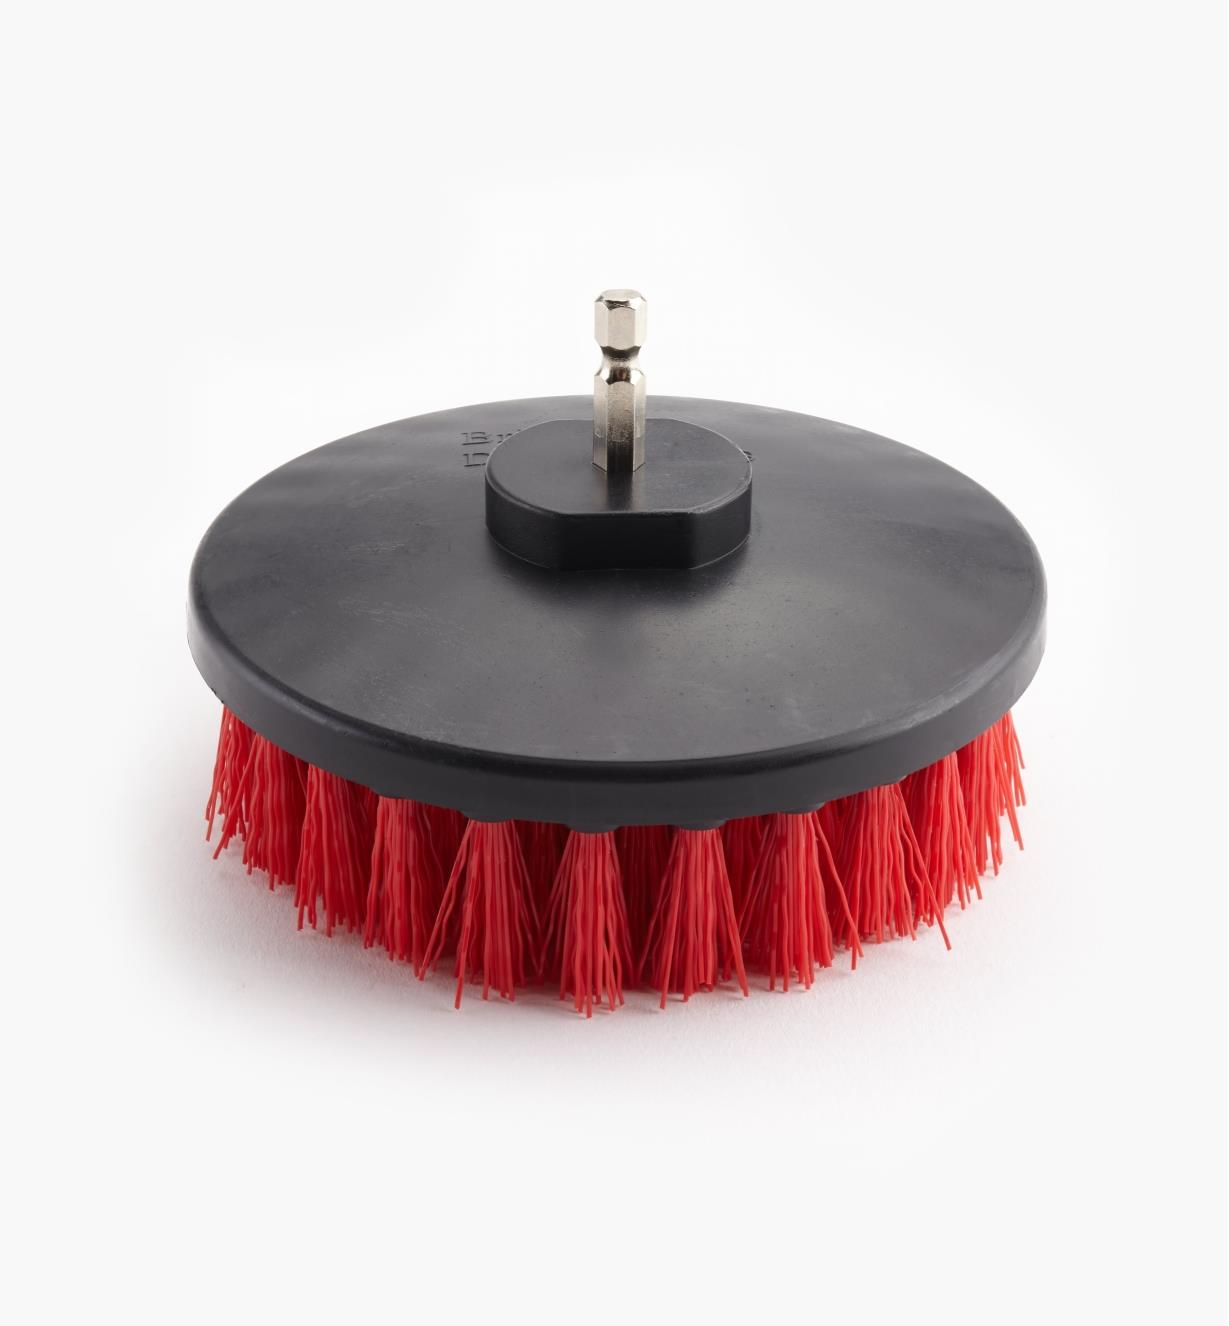 SA150 - Brosse ronde pour perceuse Drill Brush, ridigité moyenne